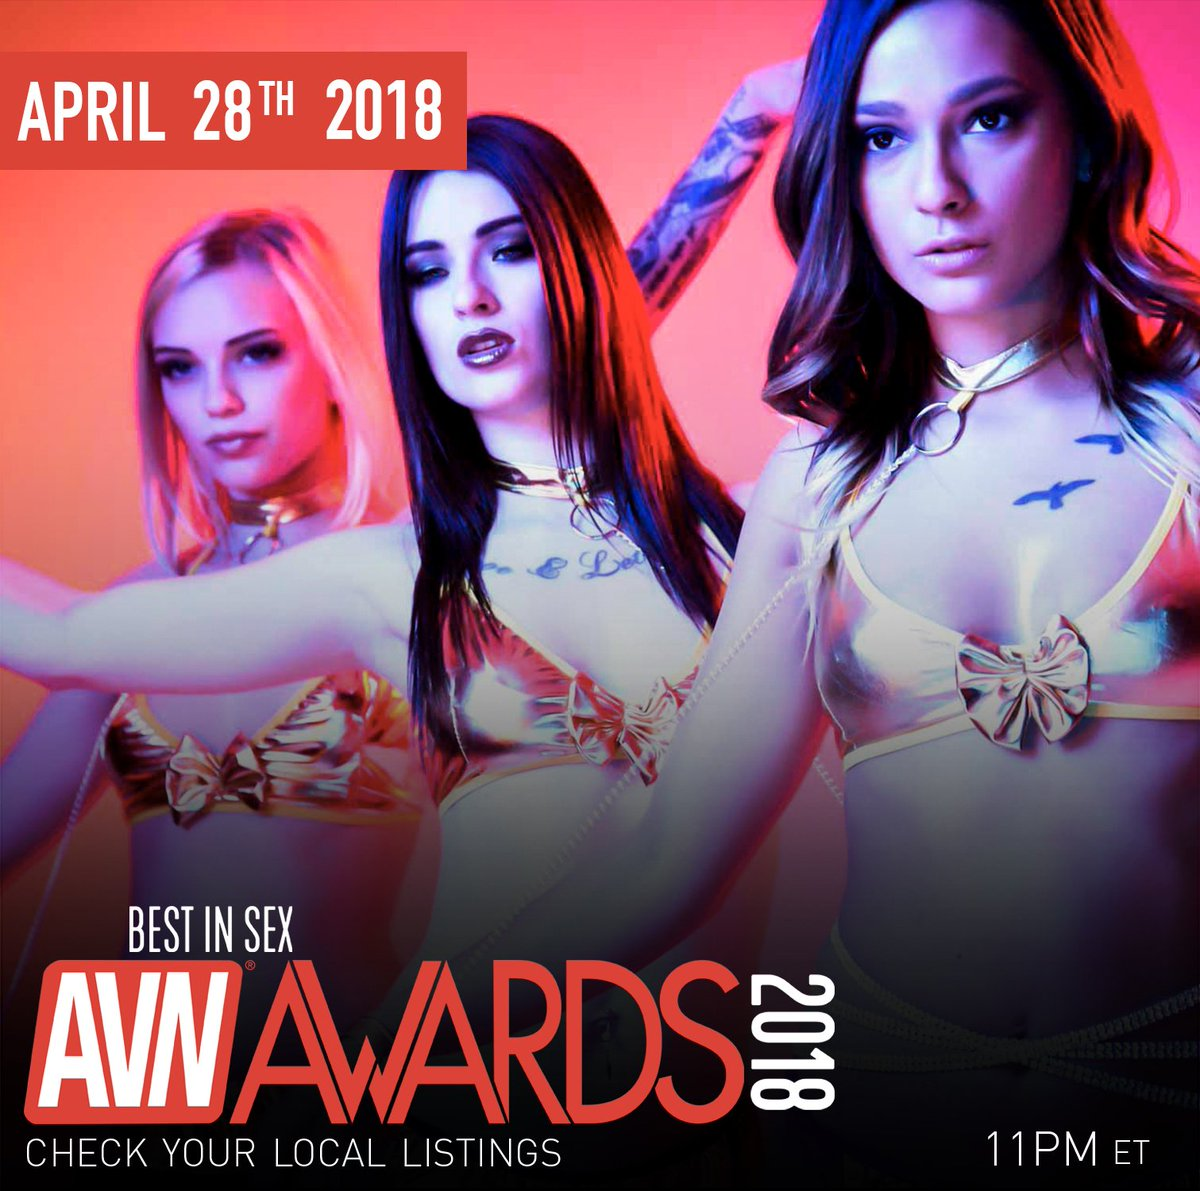 test Twitter Media - RT @avnawards: Let these 3 lead you to the #AVNAwards on April 28th!  @alexgreyxxx @JaydeSymz and @jayesummersxo https://t.co/fS1FgAydkt